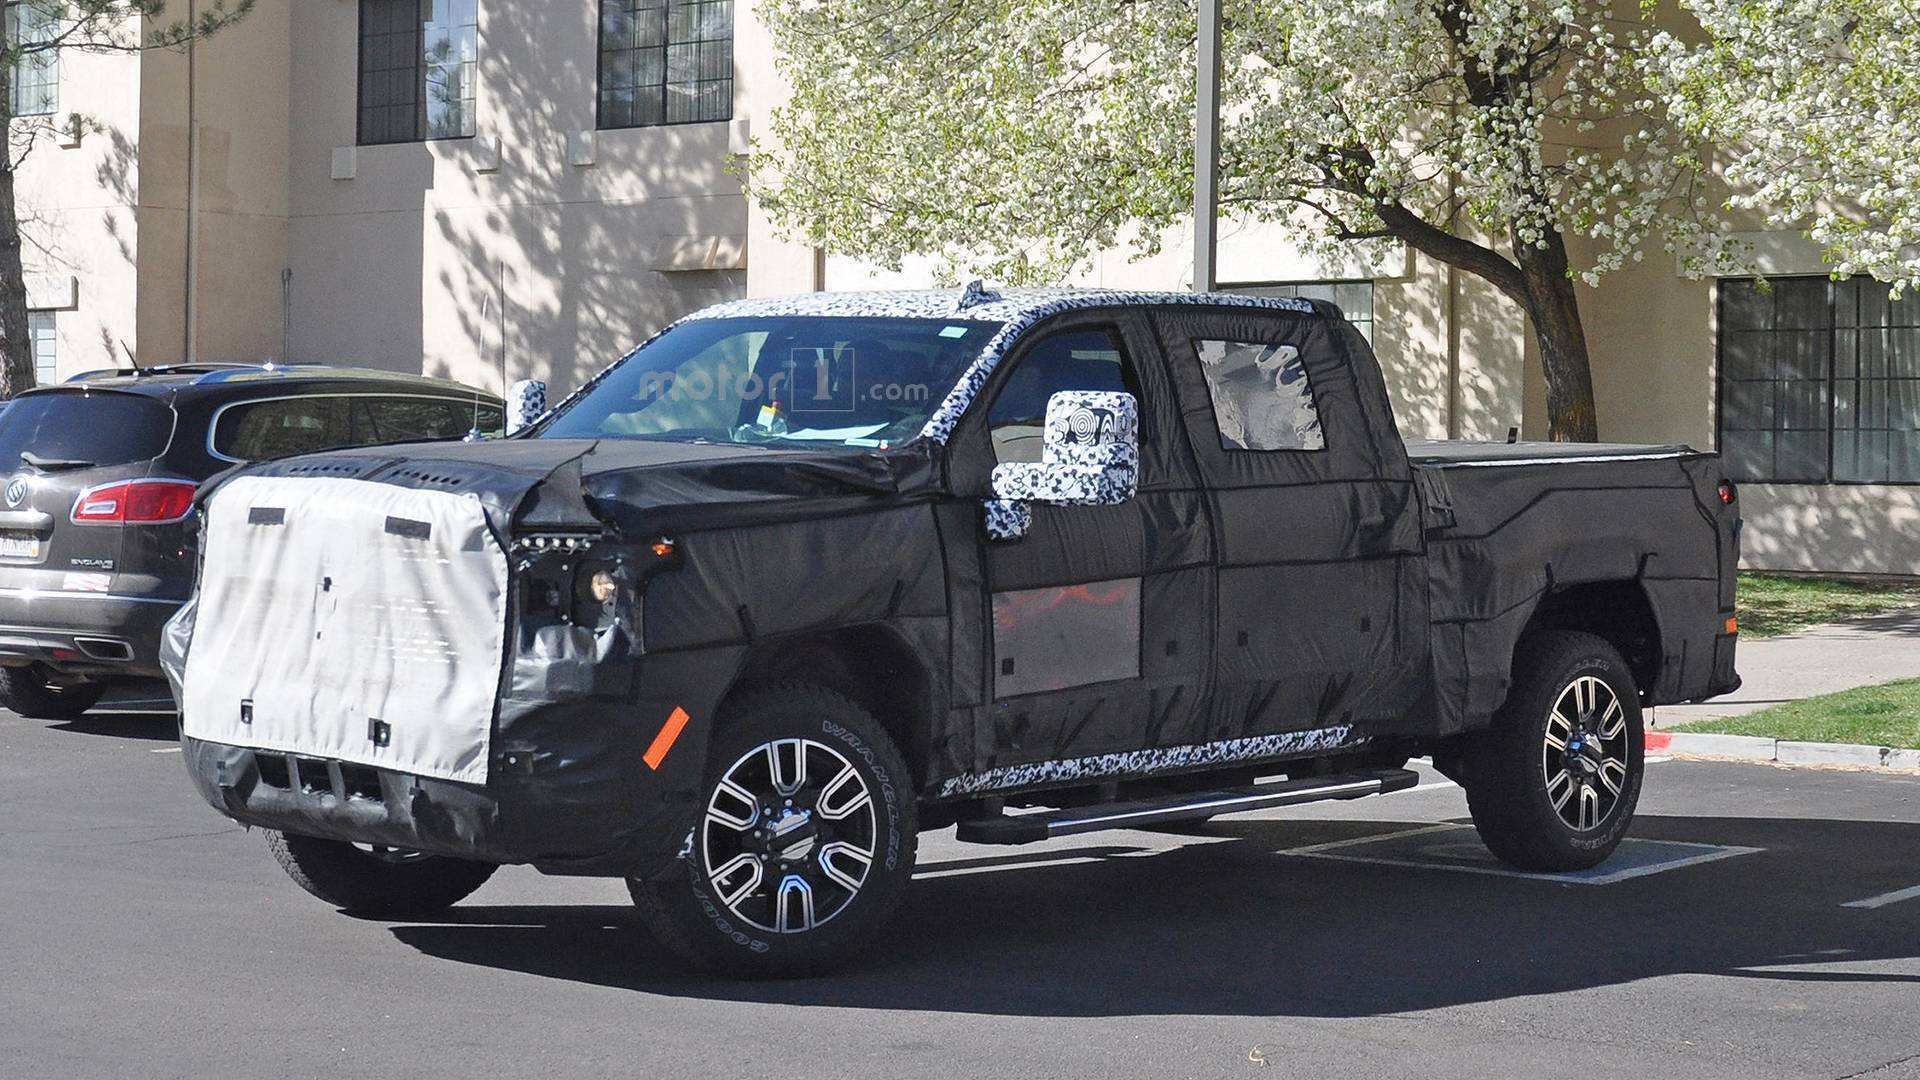 71 The 2020 GMC 2500 New Body Style Images